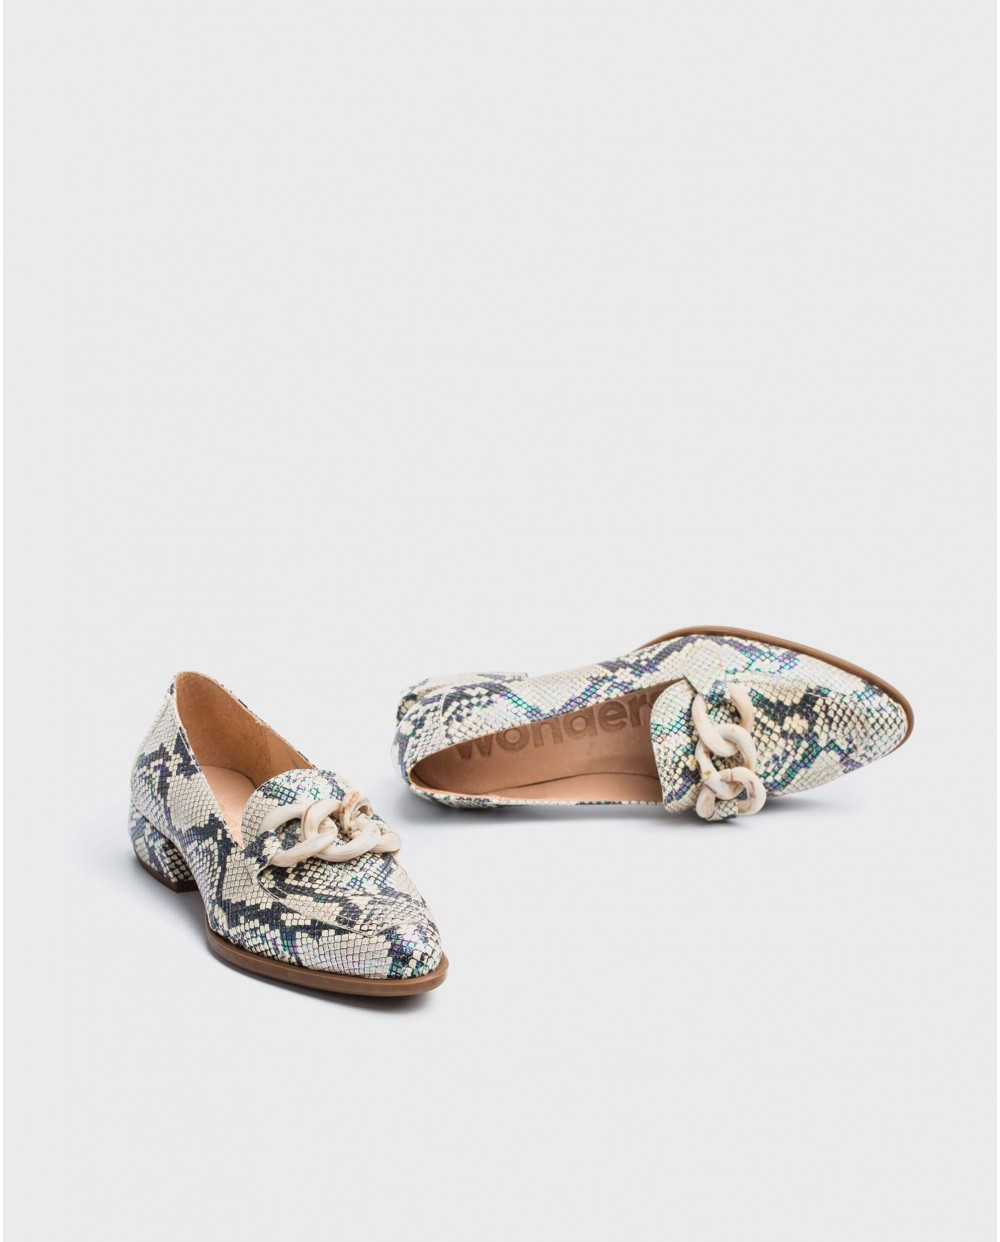 Wonders-Flat Shoes-Moccasins with chain